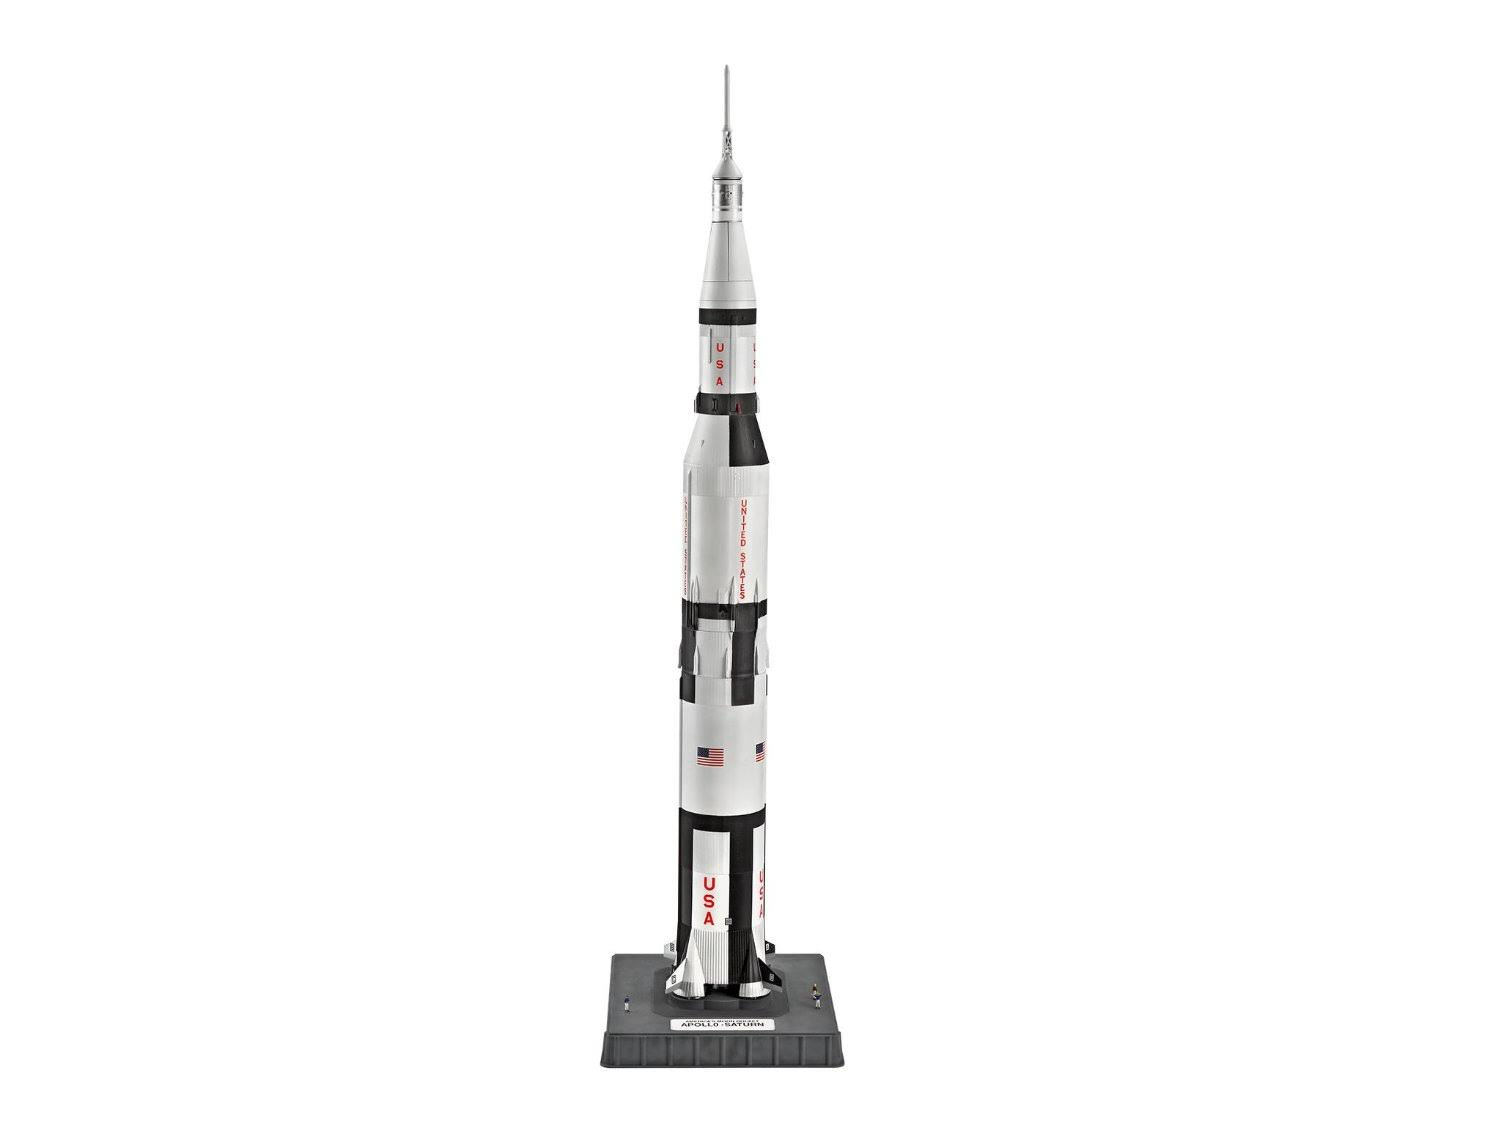 Revell Apollo Saturn V Space Kit - 1:144 scale